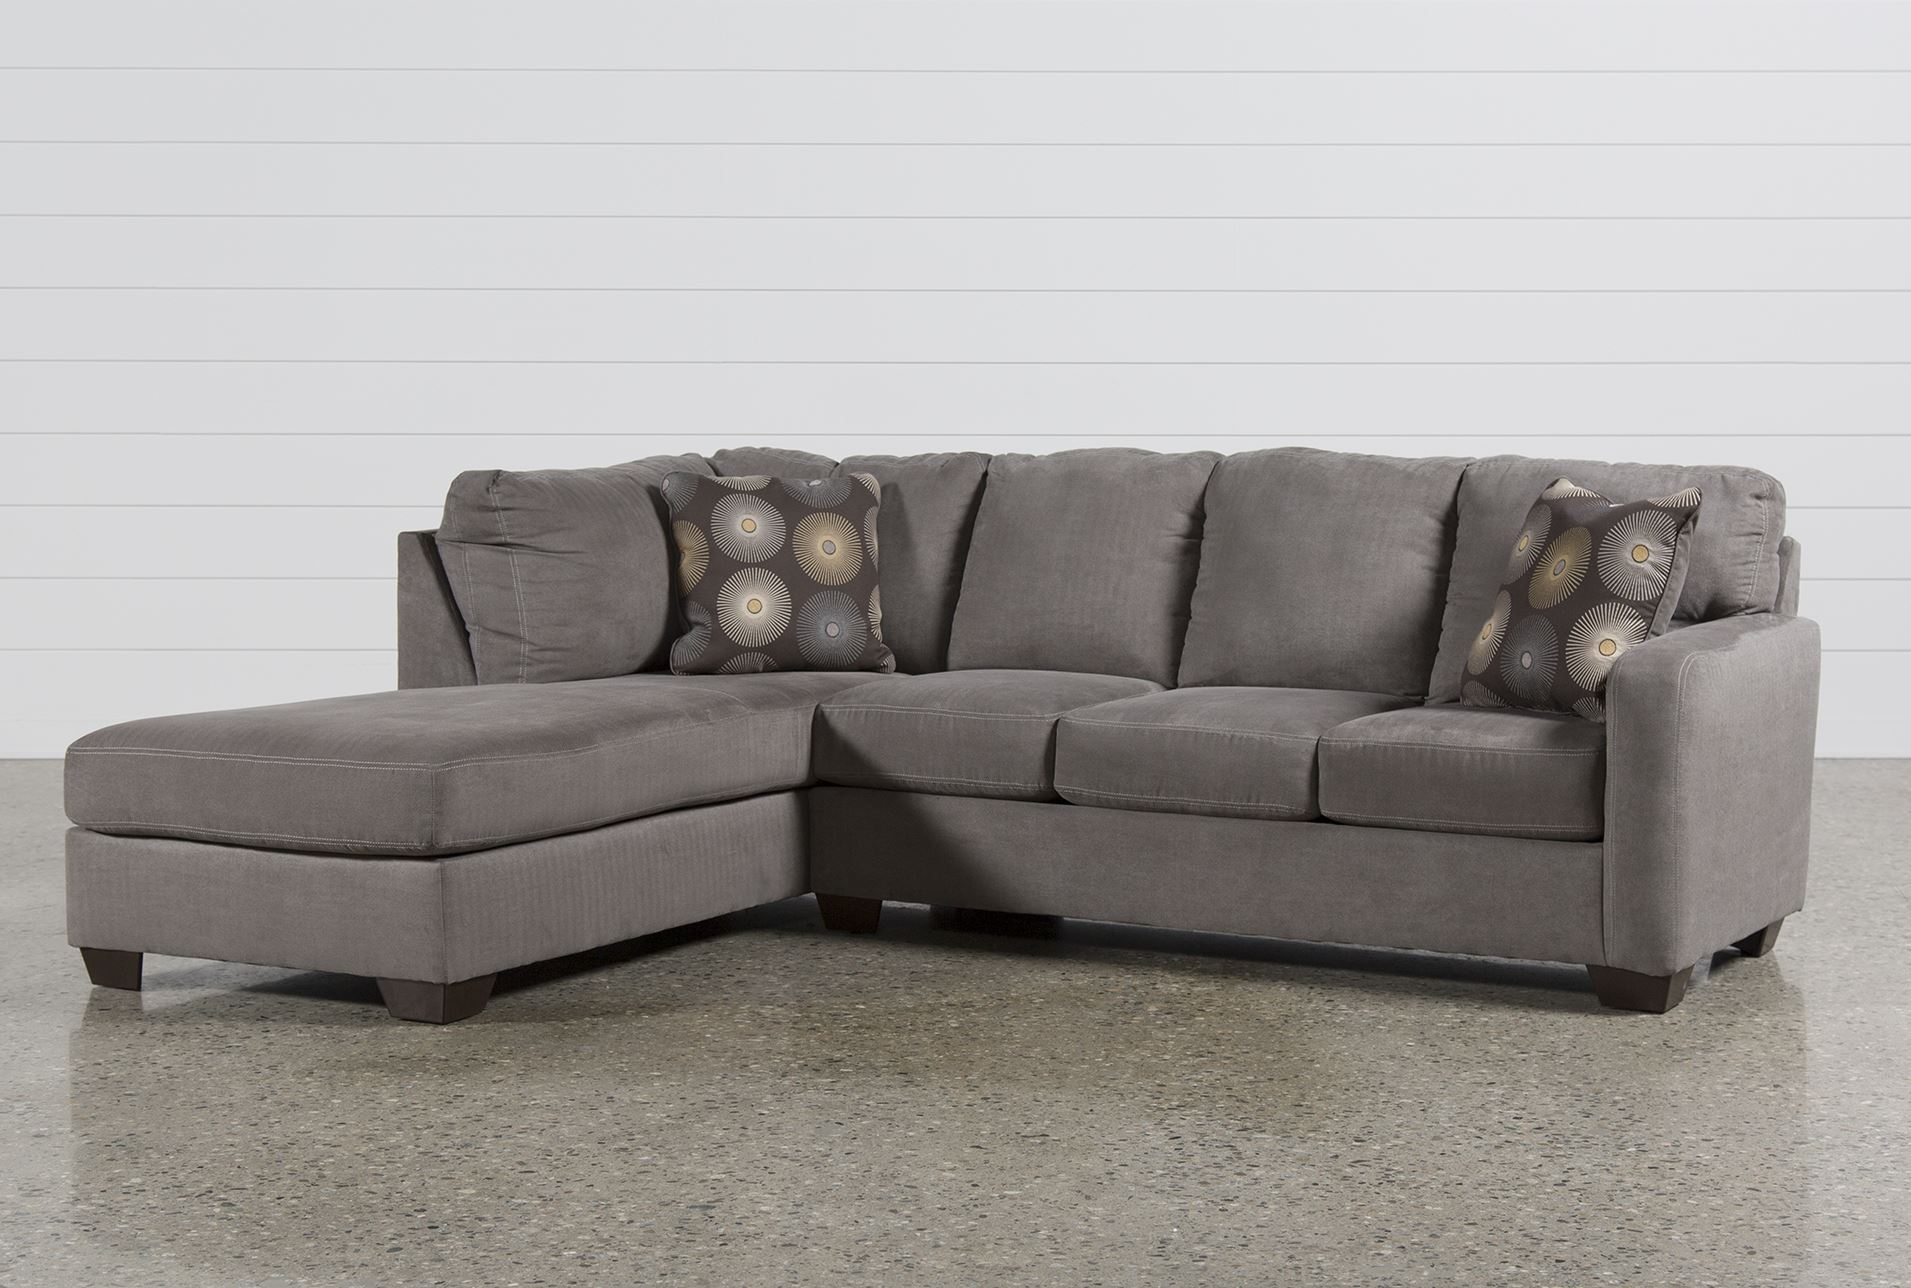 Laf Chaise Sectional Sofa | Baci Living Room Pertaining To Arrowmask 2 Piece Sectionals With Sleeper & Right Facing Chaise (Image 11 of 25)